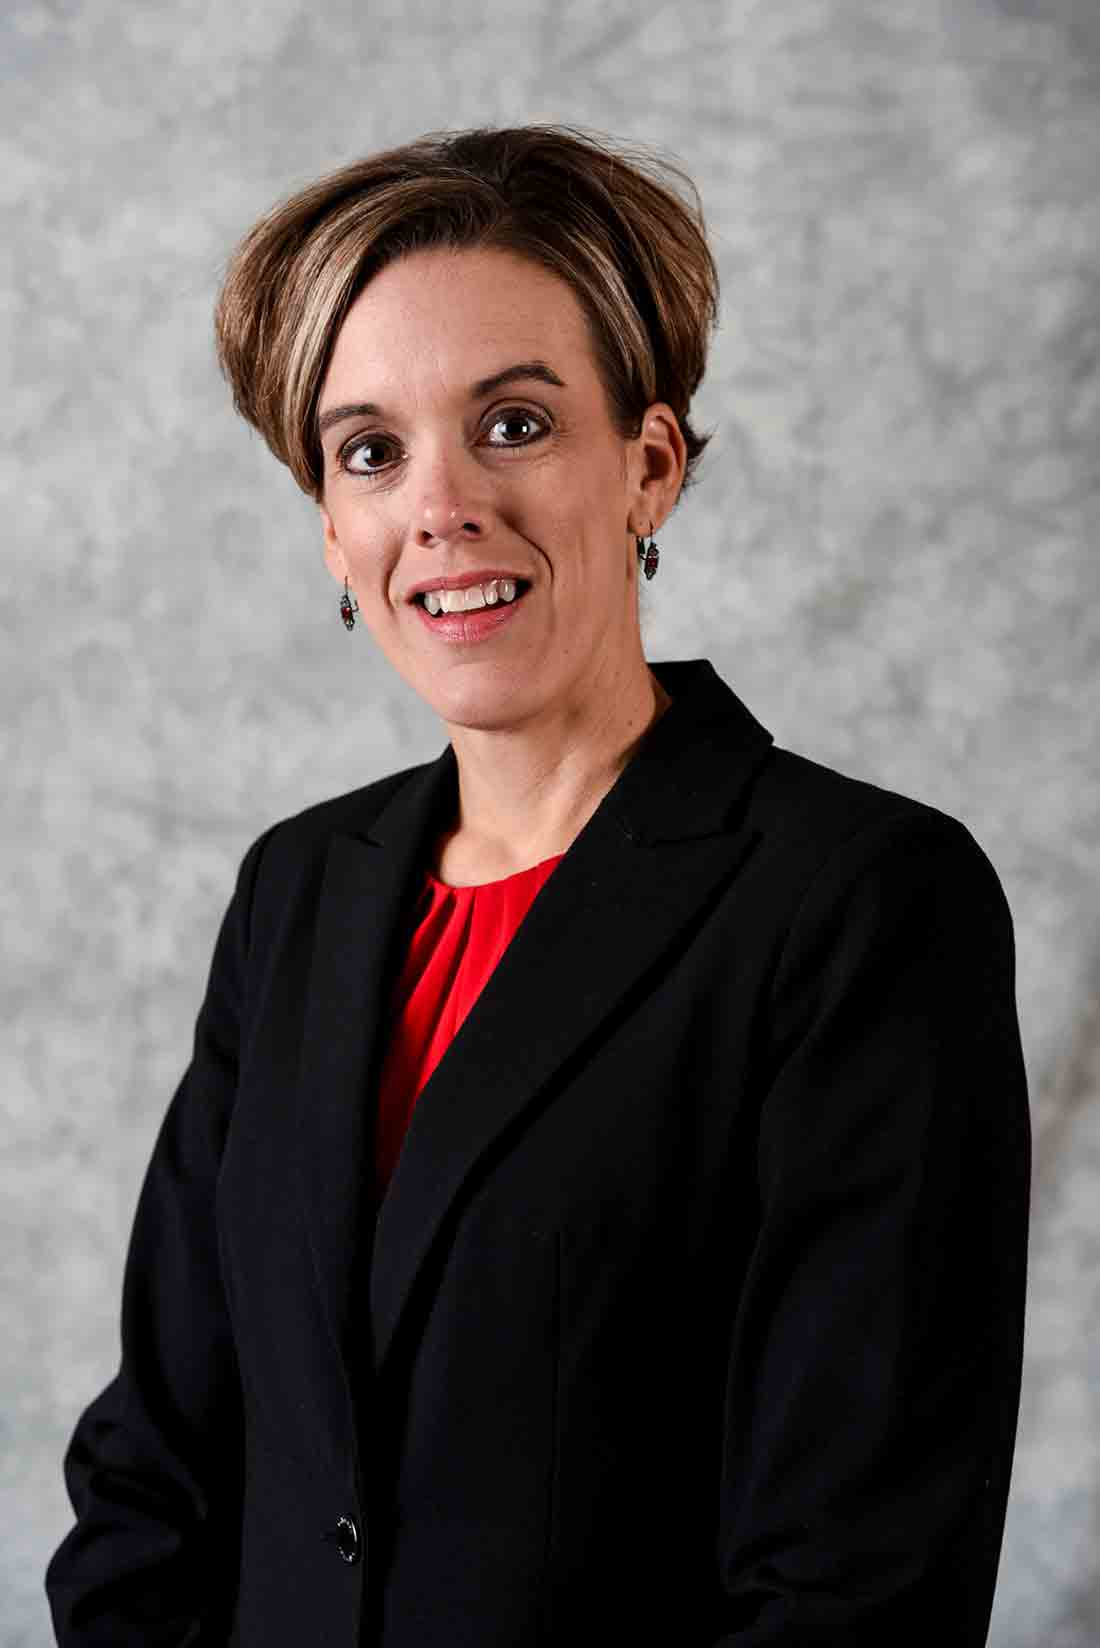 Jan Smith, CFSP : Vice-President, Funeral Operations; Managing Director/Funeral Director